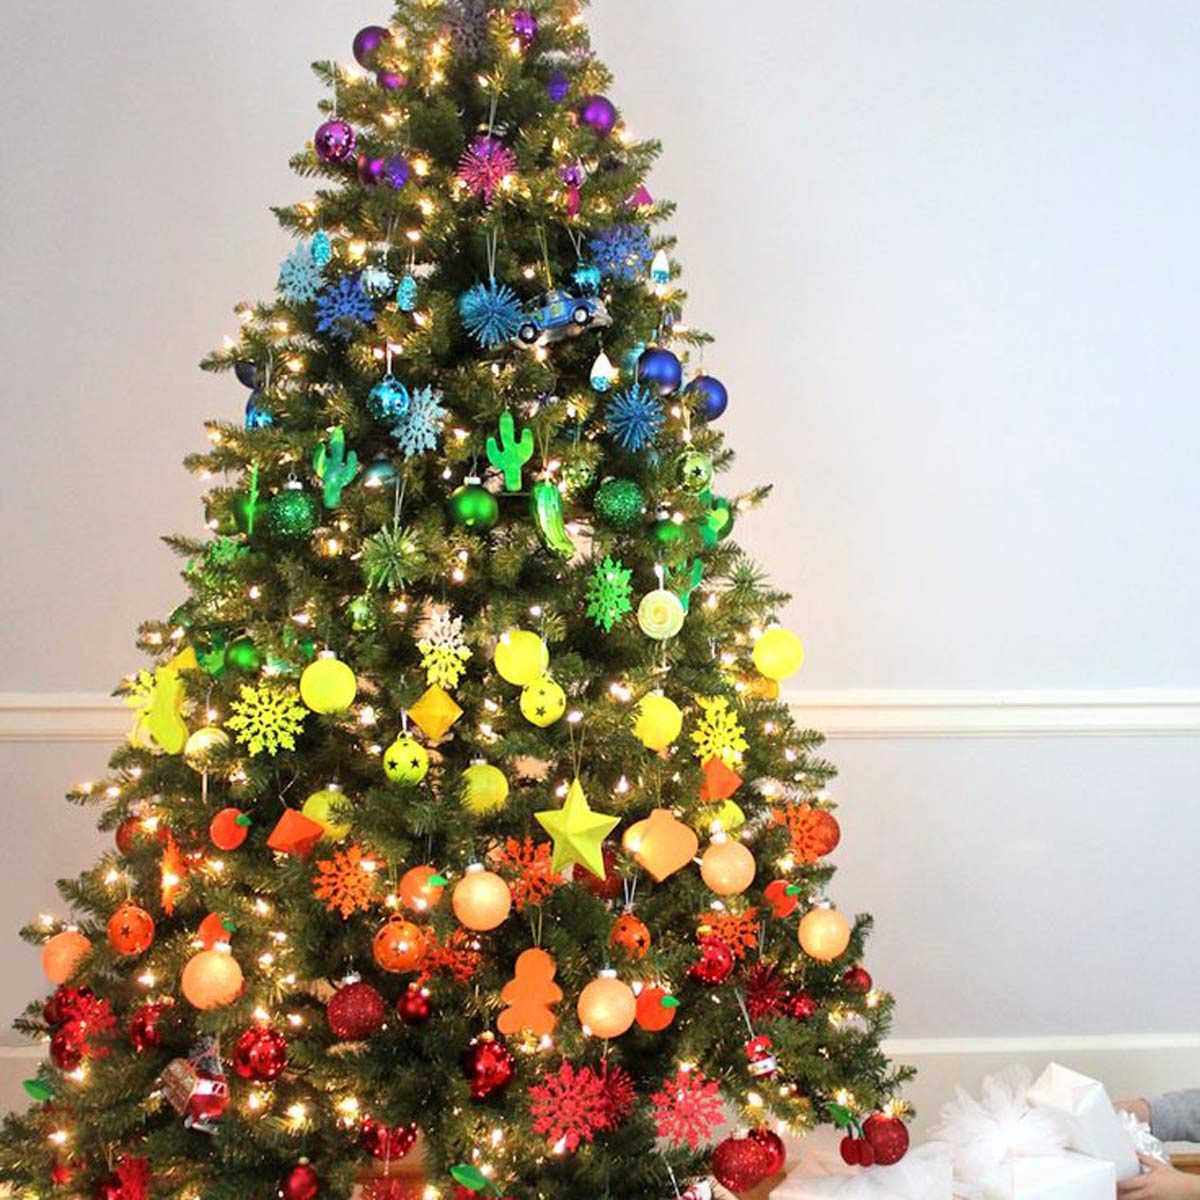 Rainbow Christmas Trees: 100 Incredible Christmas Tree Decorating Ideas